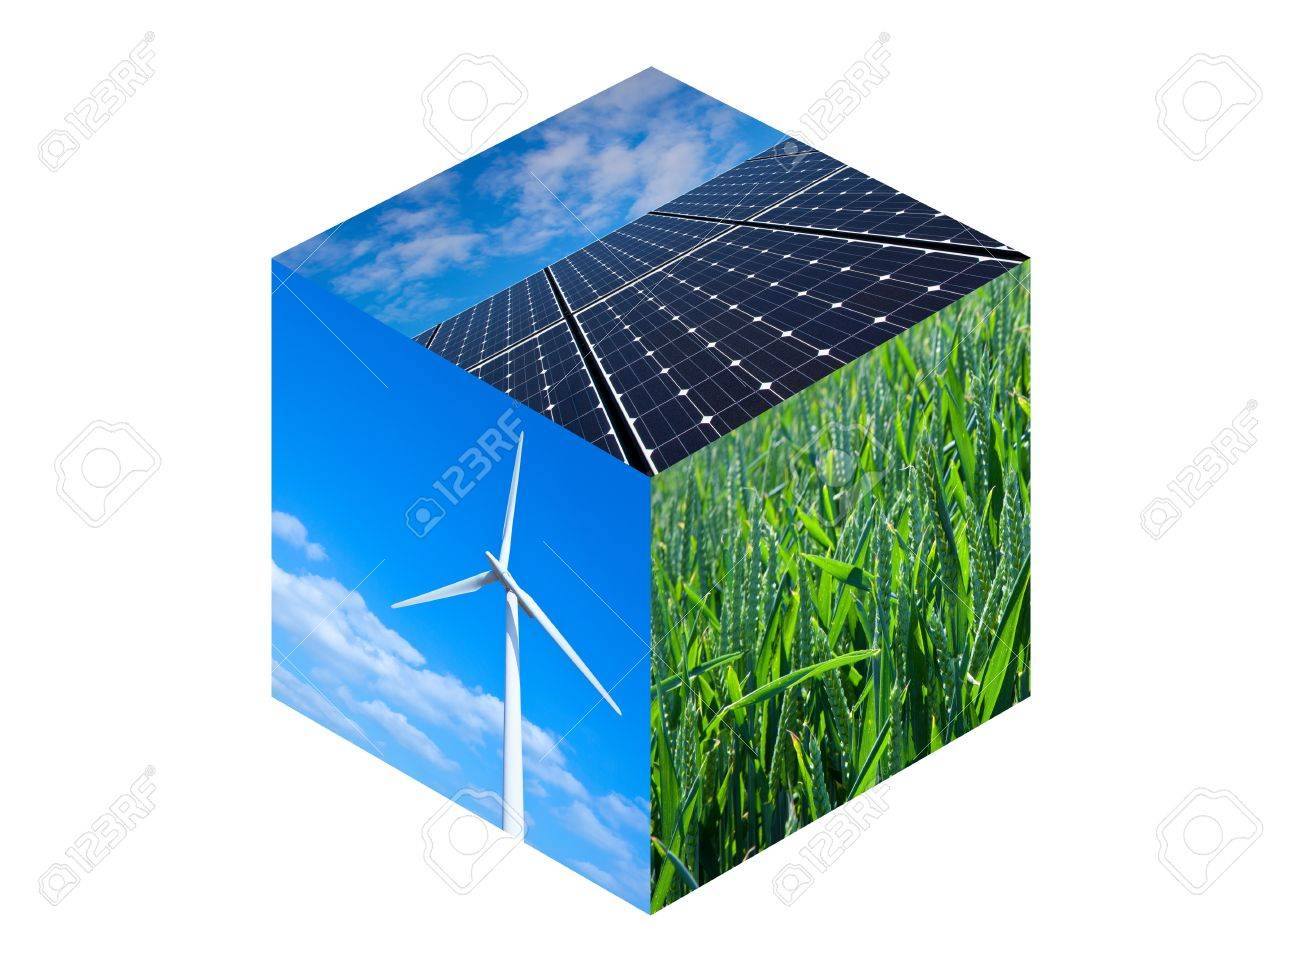 Wind turbine, solar panels and wheat field. Renewable energy photos in a cube - 16166460